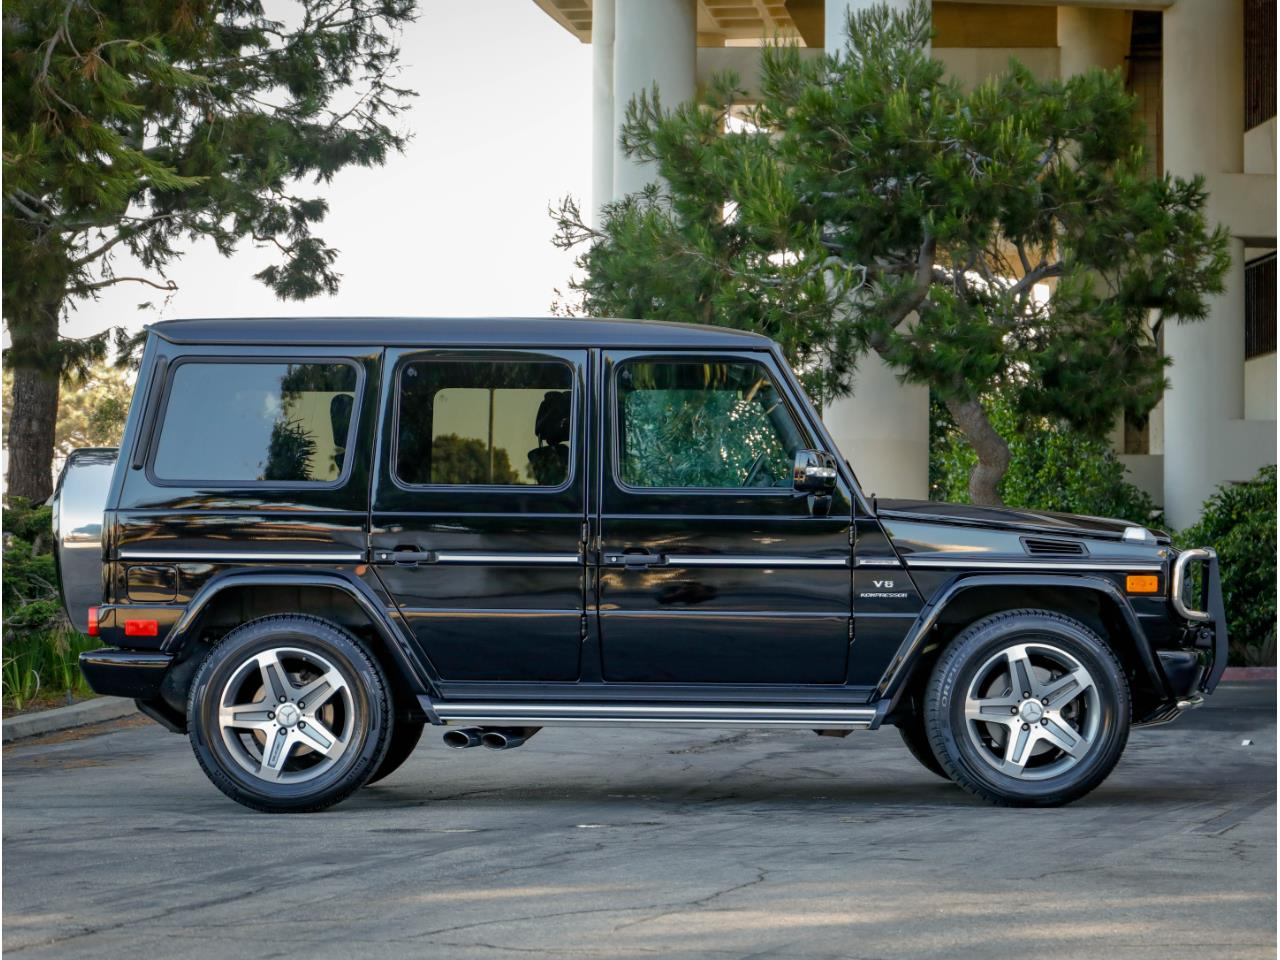 2011 Mercedes-Benz G550 for sale in Marina Del Rey, CA – photo 5